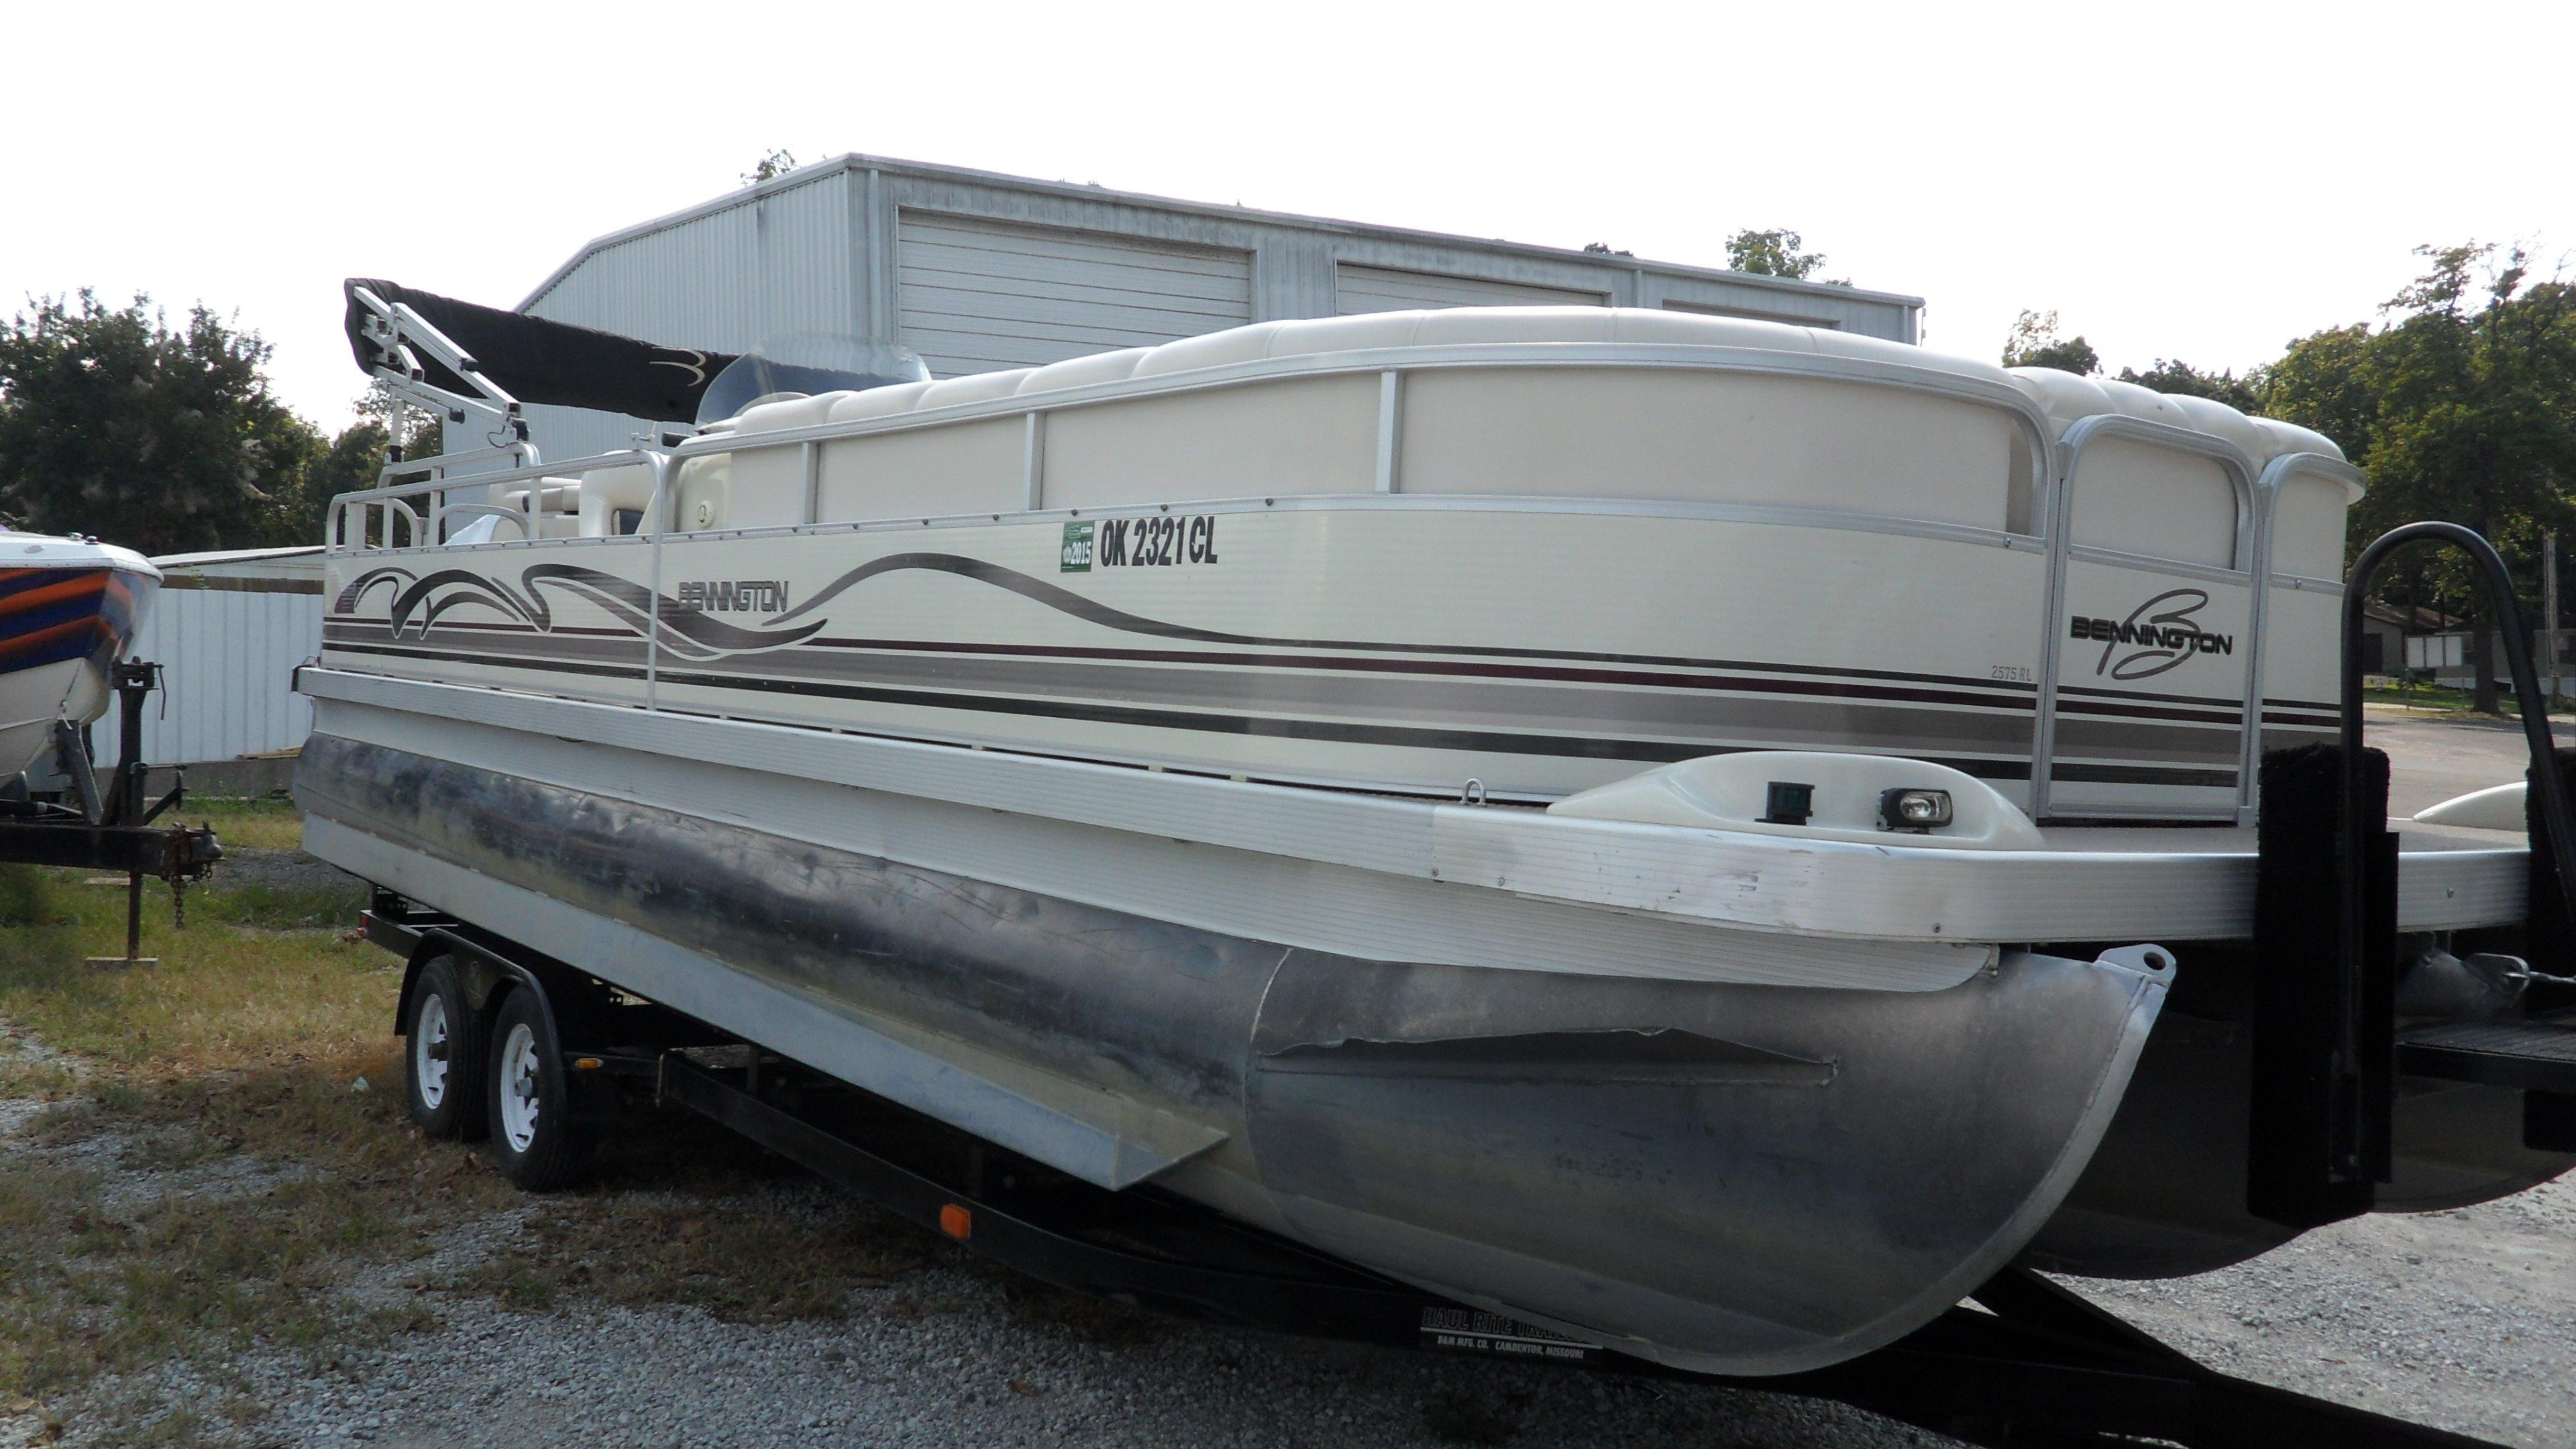 Bennington Boat Listings